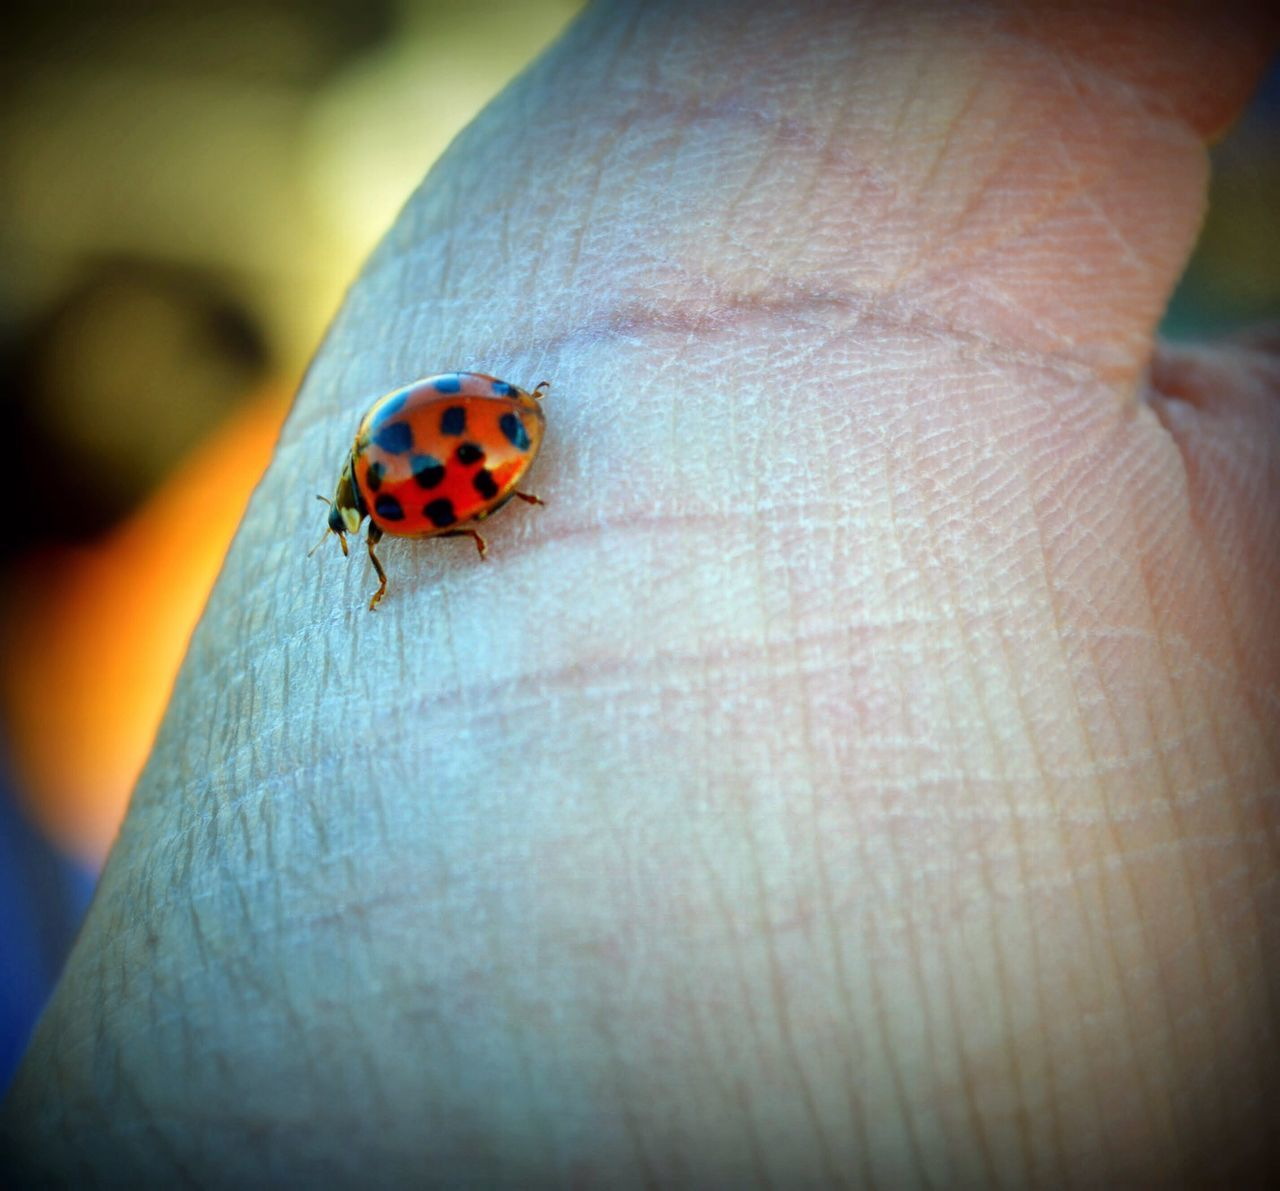 A lady bug in the hand. Check This Out